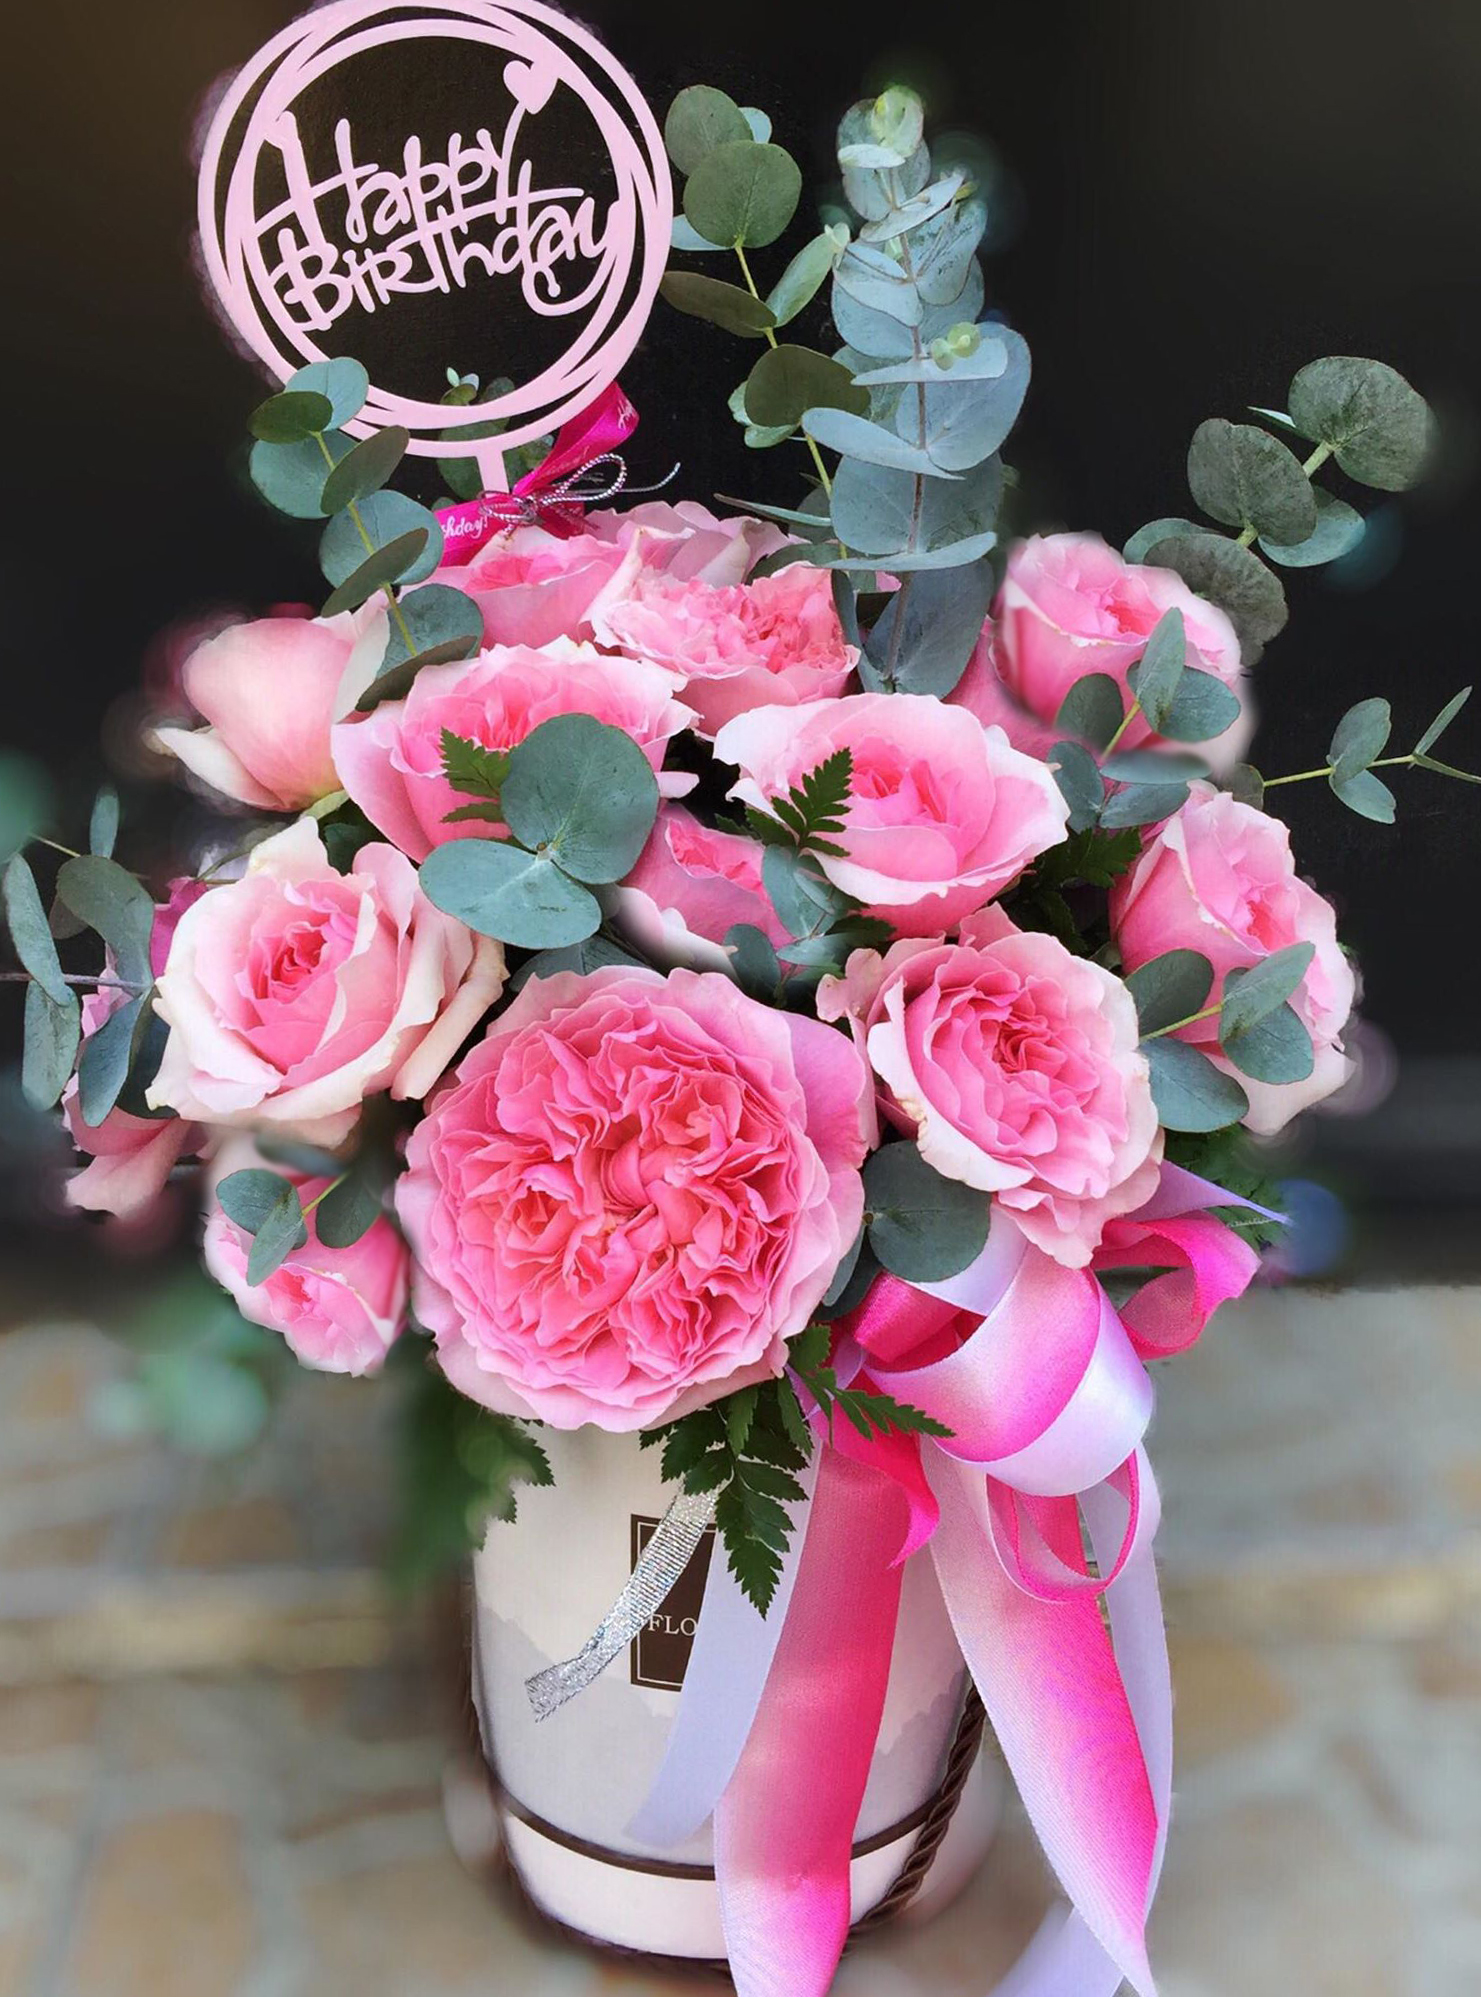 20 PINK ROSES IN BOX / special (4MUA HHF-20PRBOX/SP)